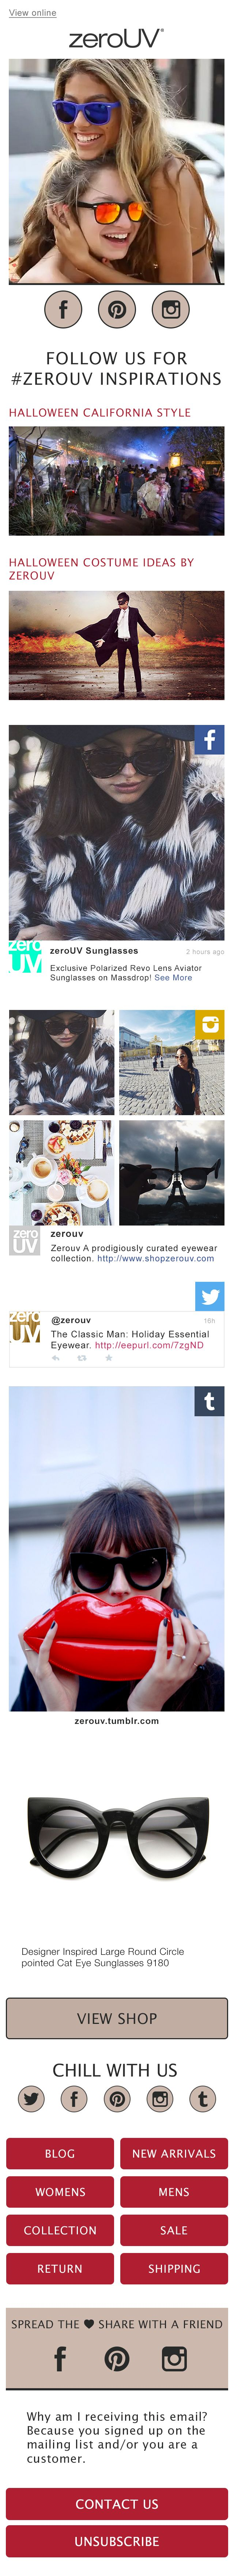 Brand-focused campaign for zeroUV w/ live social feeds that refresh on each open using open-time technology http://www.shopzerouv.com/